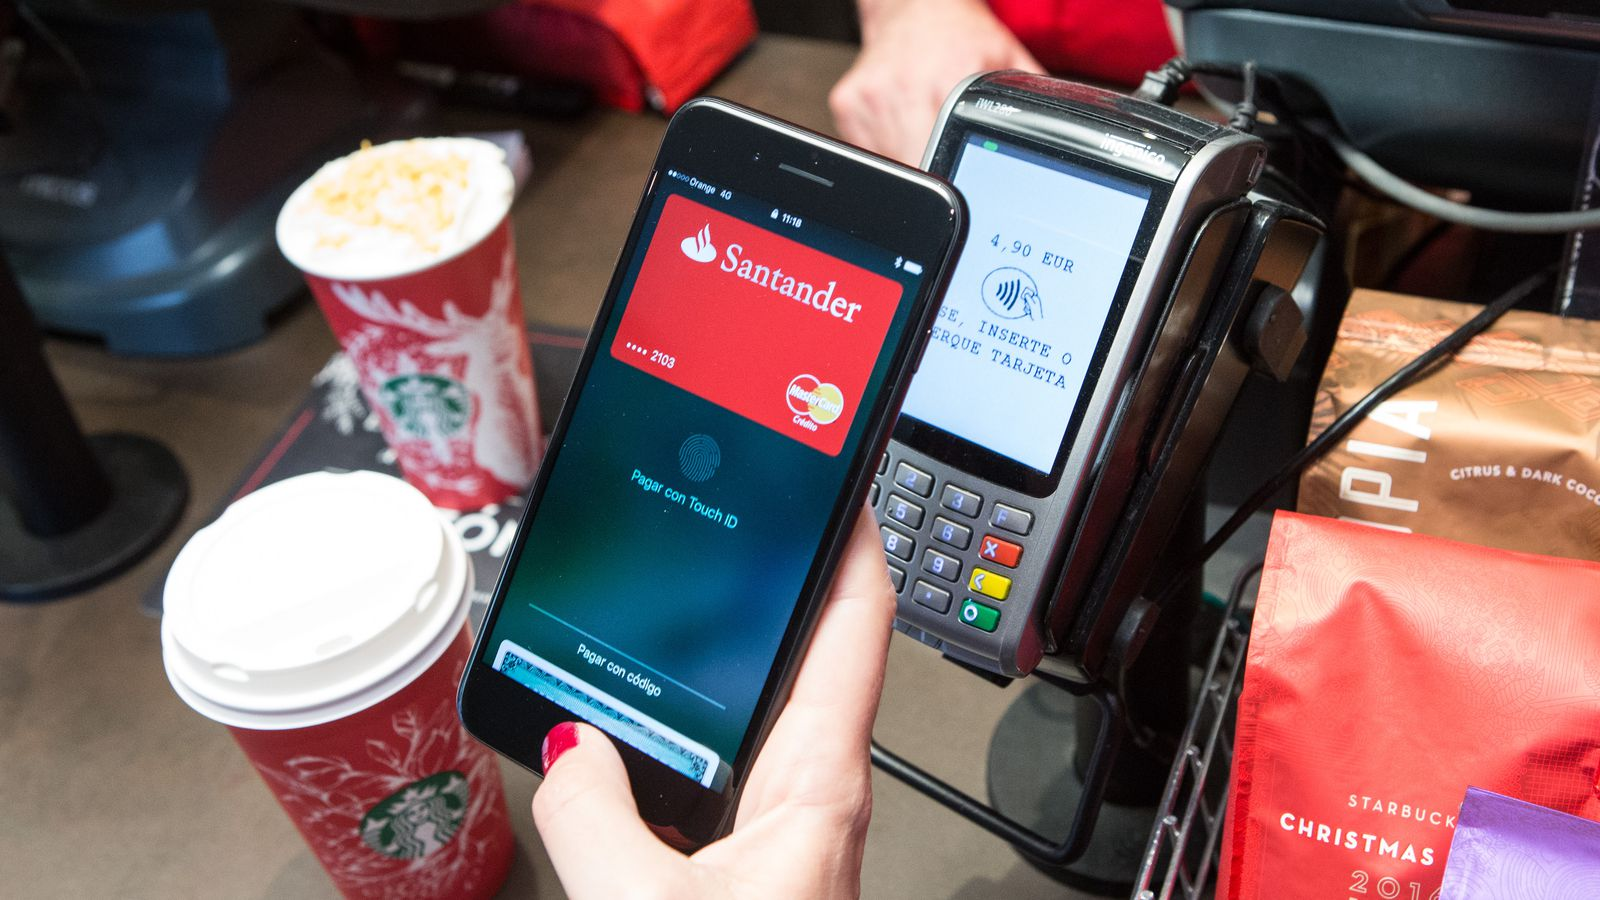 35 percent of US merchants accept Apple Pay